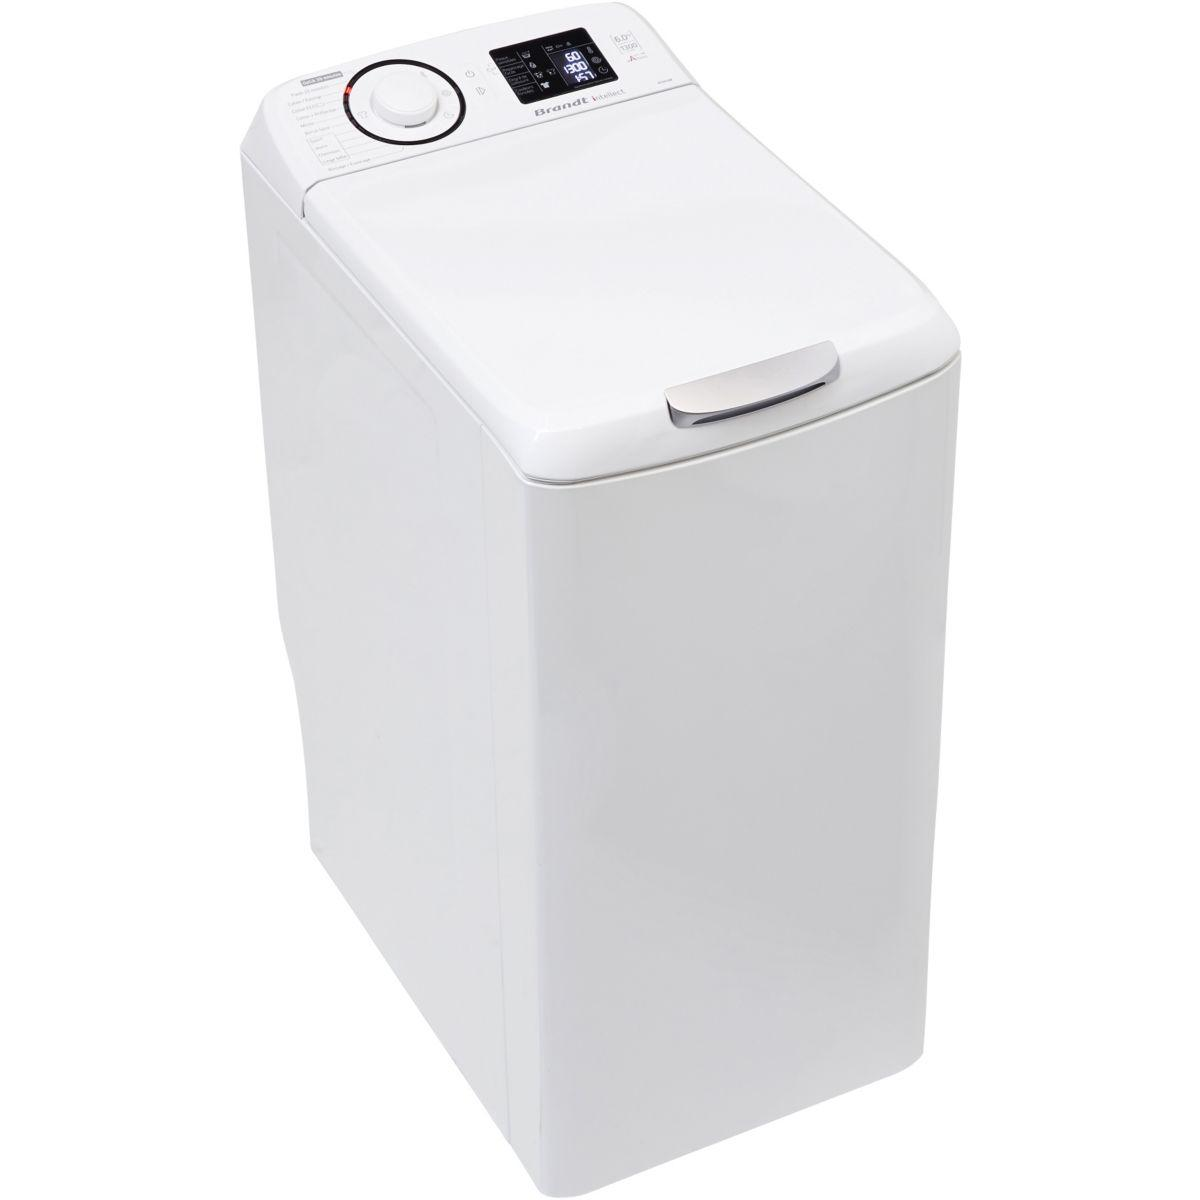 Lave linge top brandt bt603m - 2% de remise imm�diate avec le code : gam2 (photo)